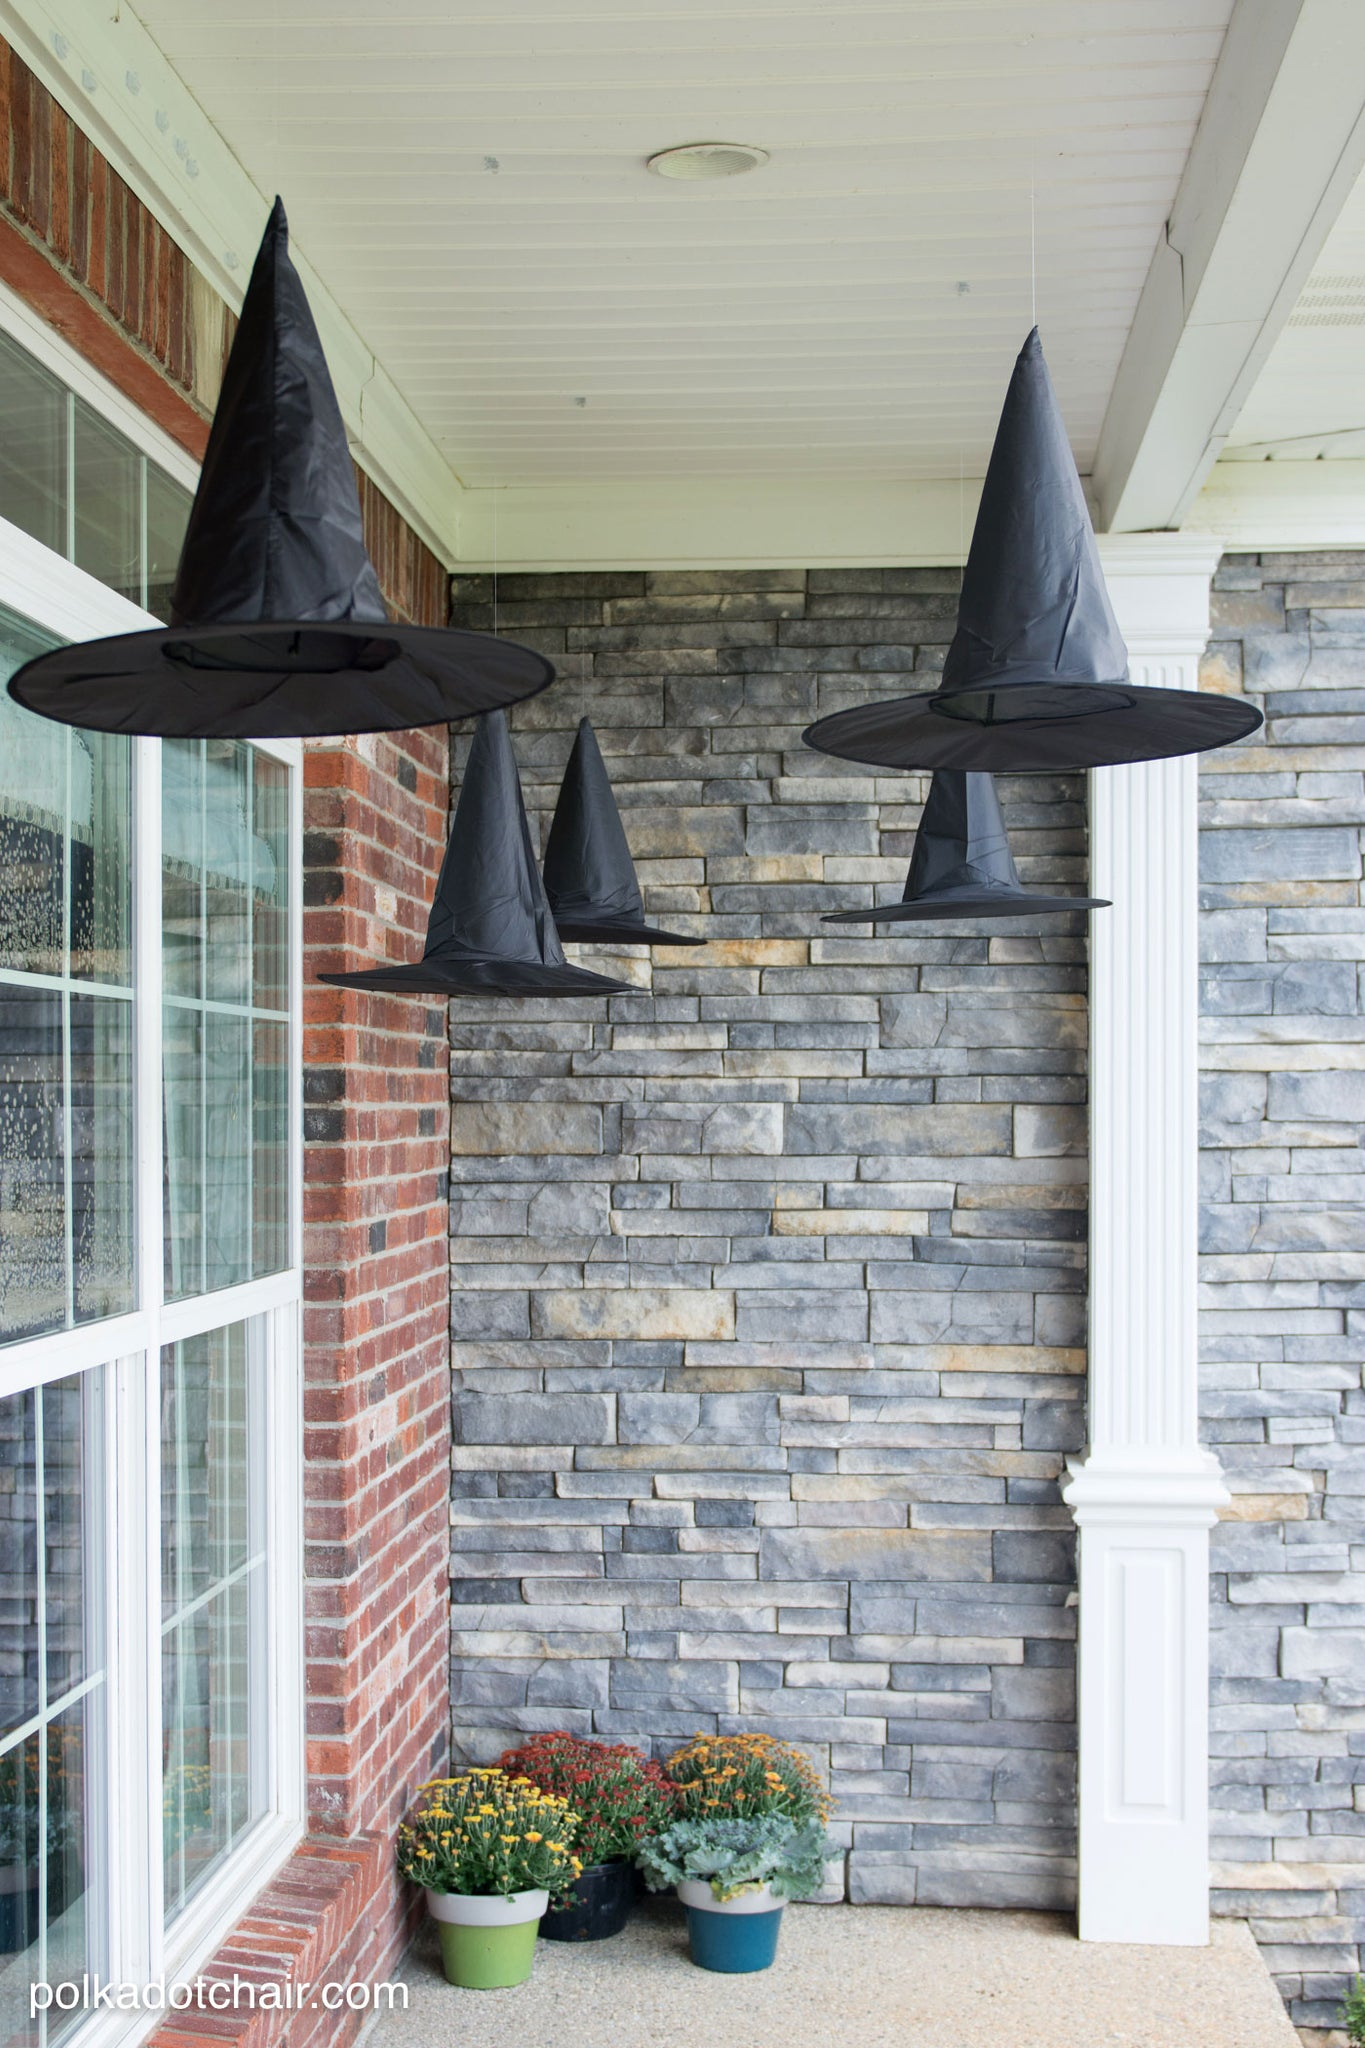 DIY Hanging Witch Hats for Halloween Decor